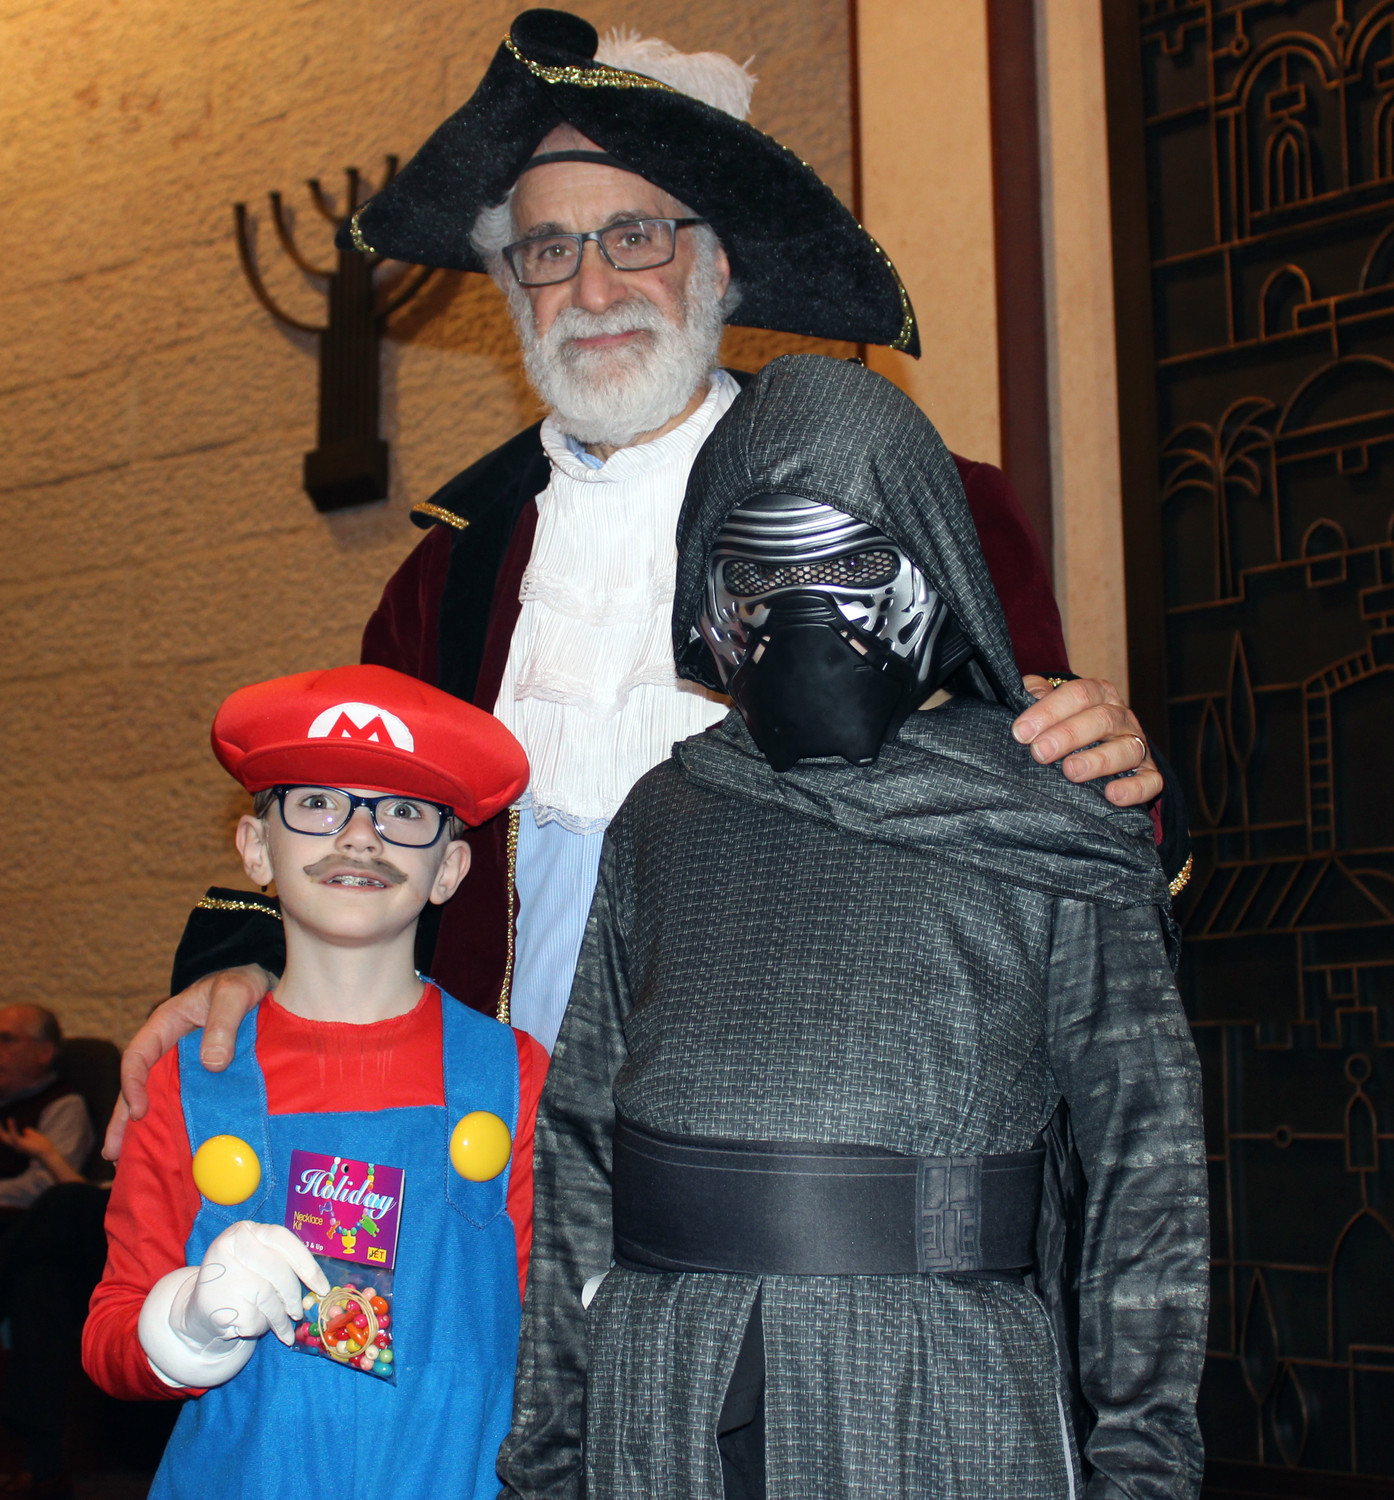 Prizes were also given to Matthew Feldman-Bates, 8, who dressed as the video-game character Mario, Seth Mawner, 10, left, who dressed as Kilo Ren from Star Wars. Both are pictured here with Rabbi Ronald Androphy.